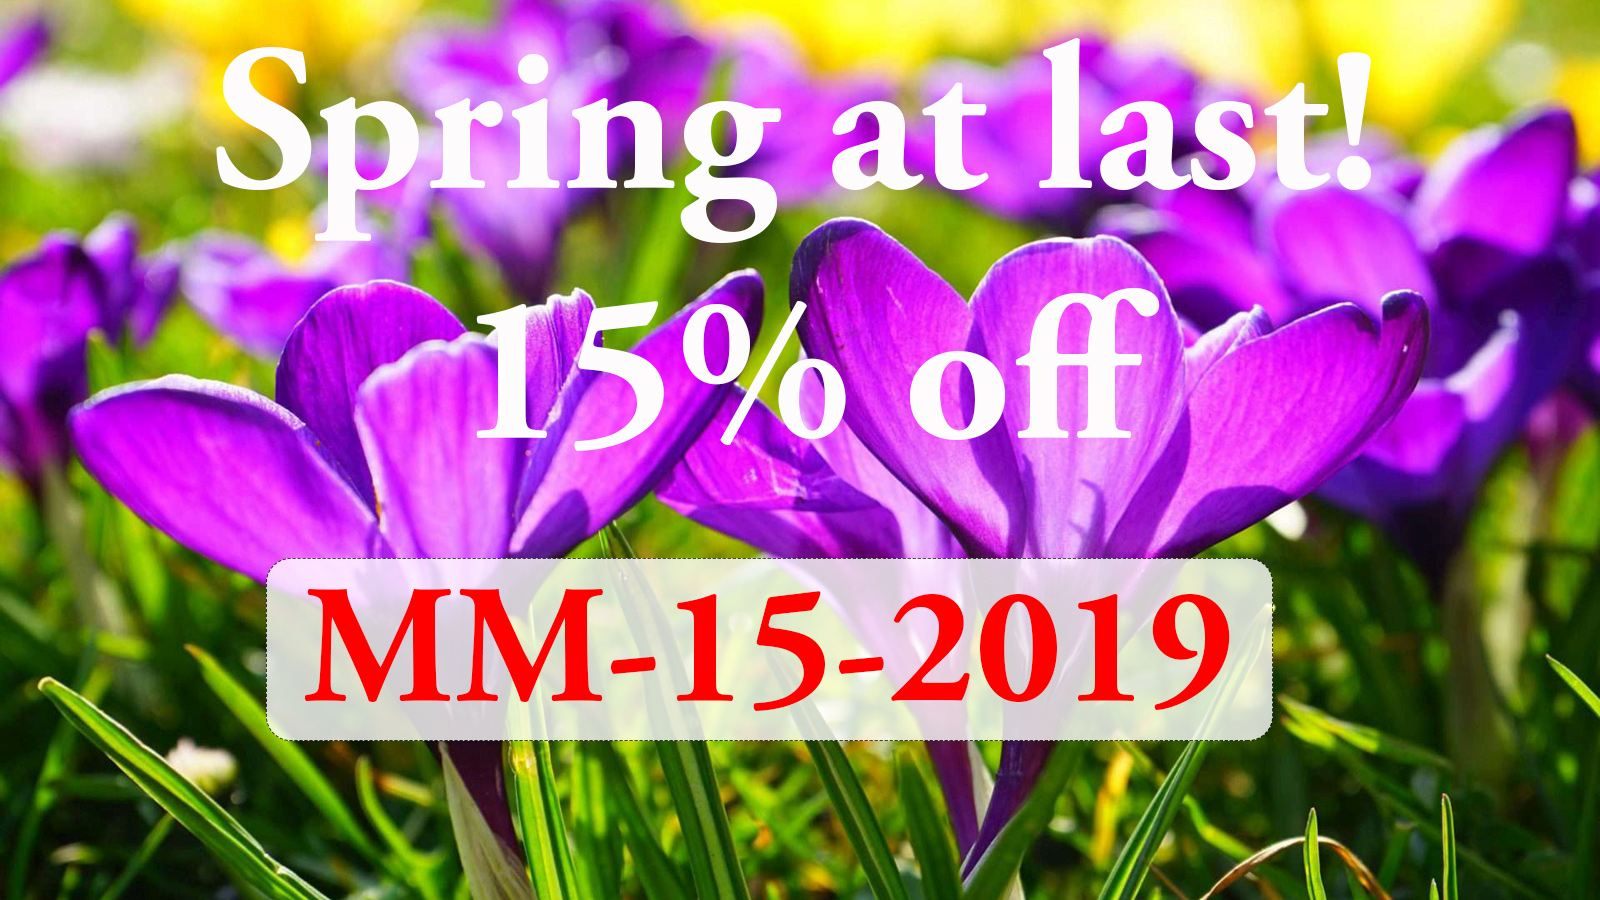 Valid until 24.03.19 - All products except dolls & gift vouchers.